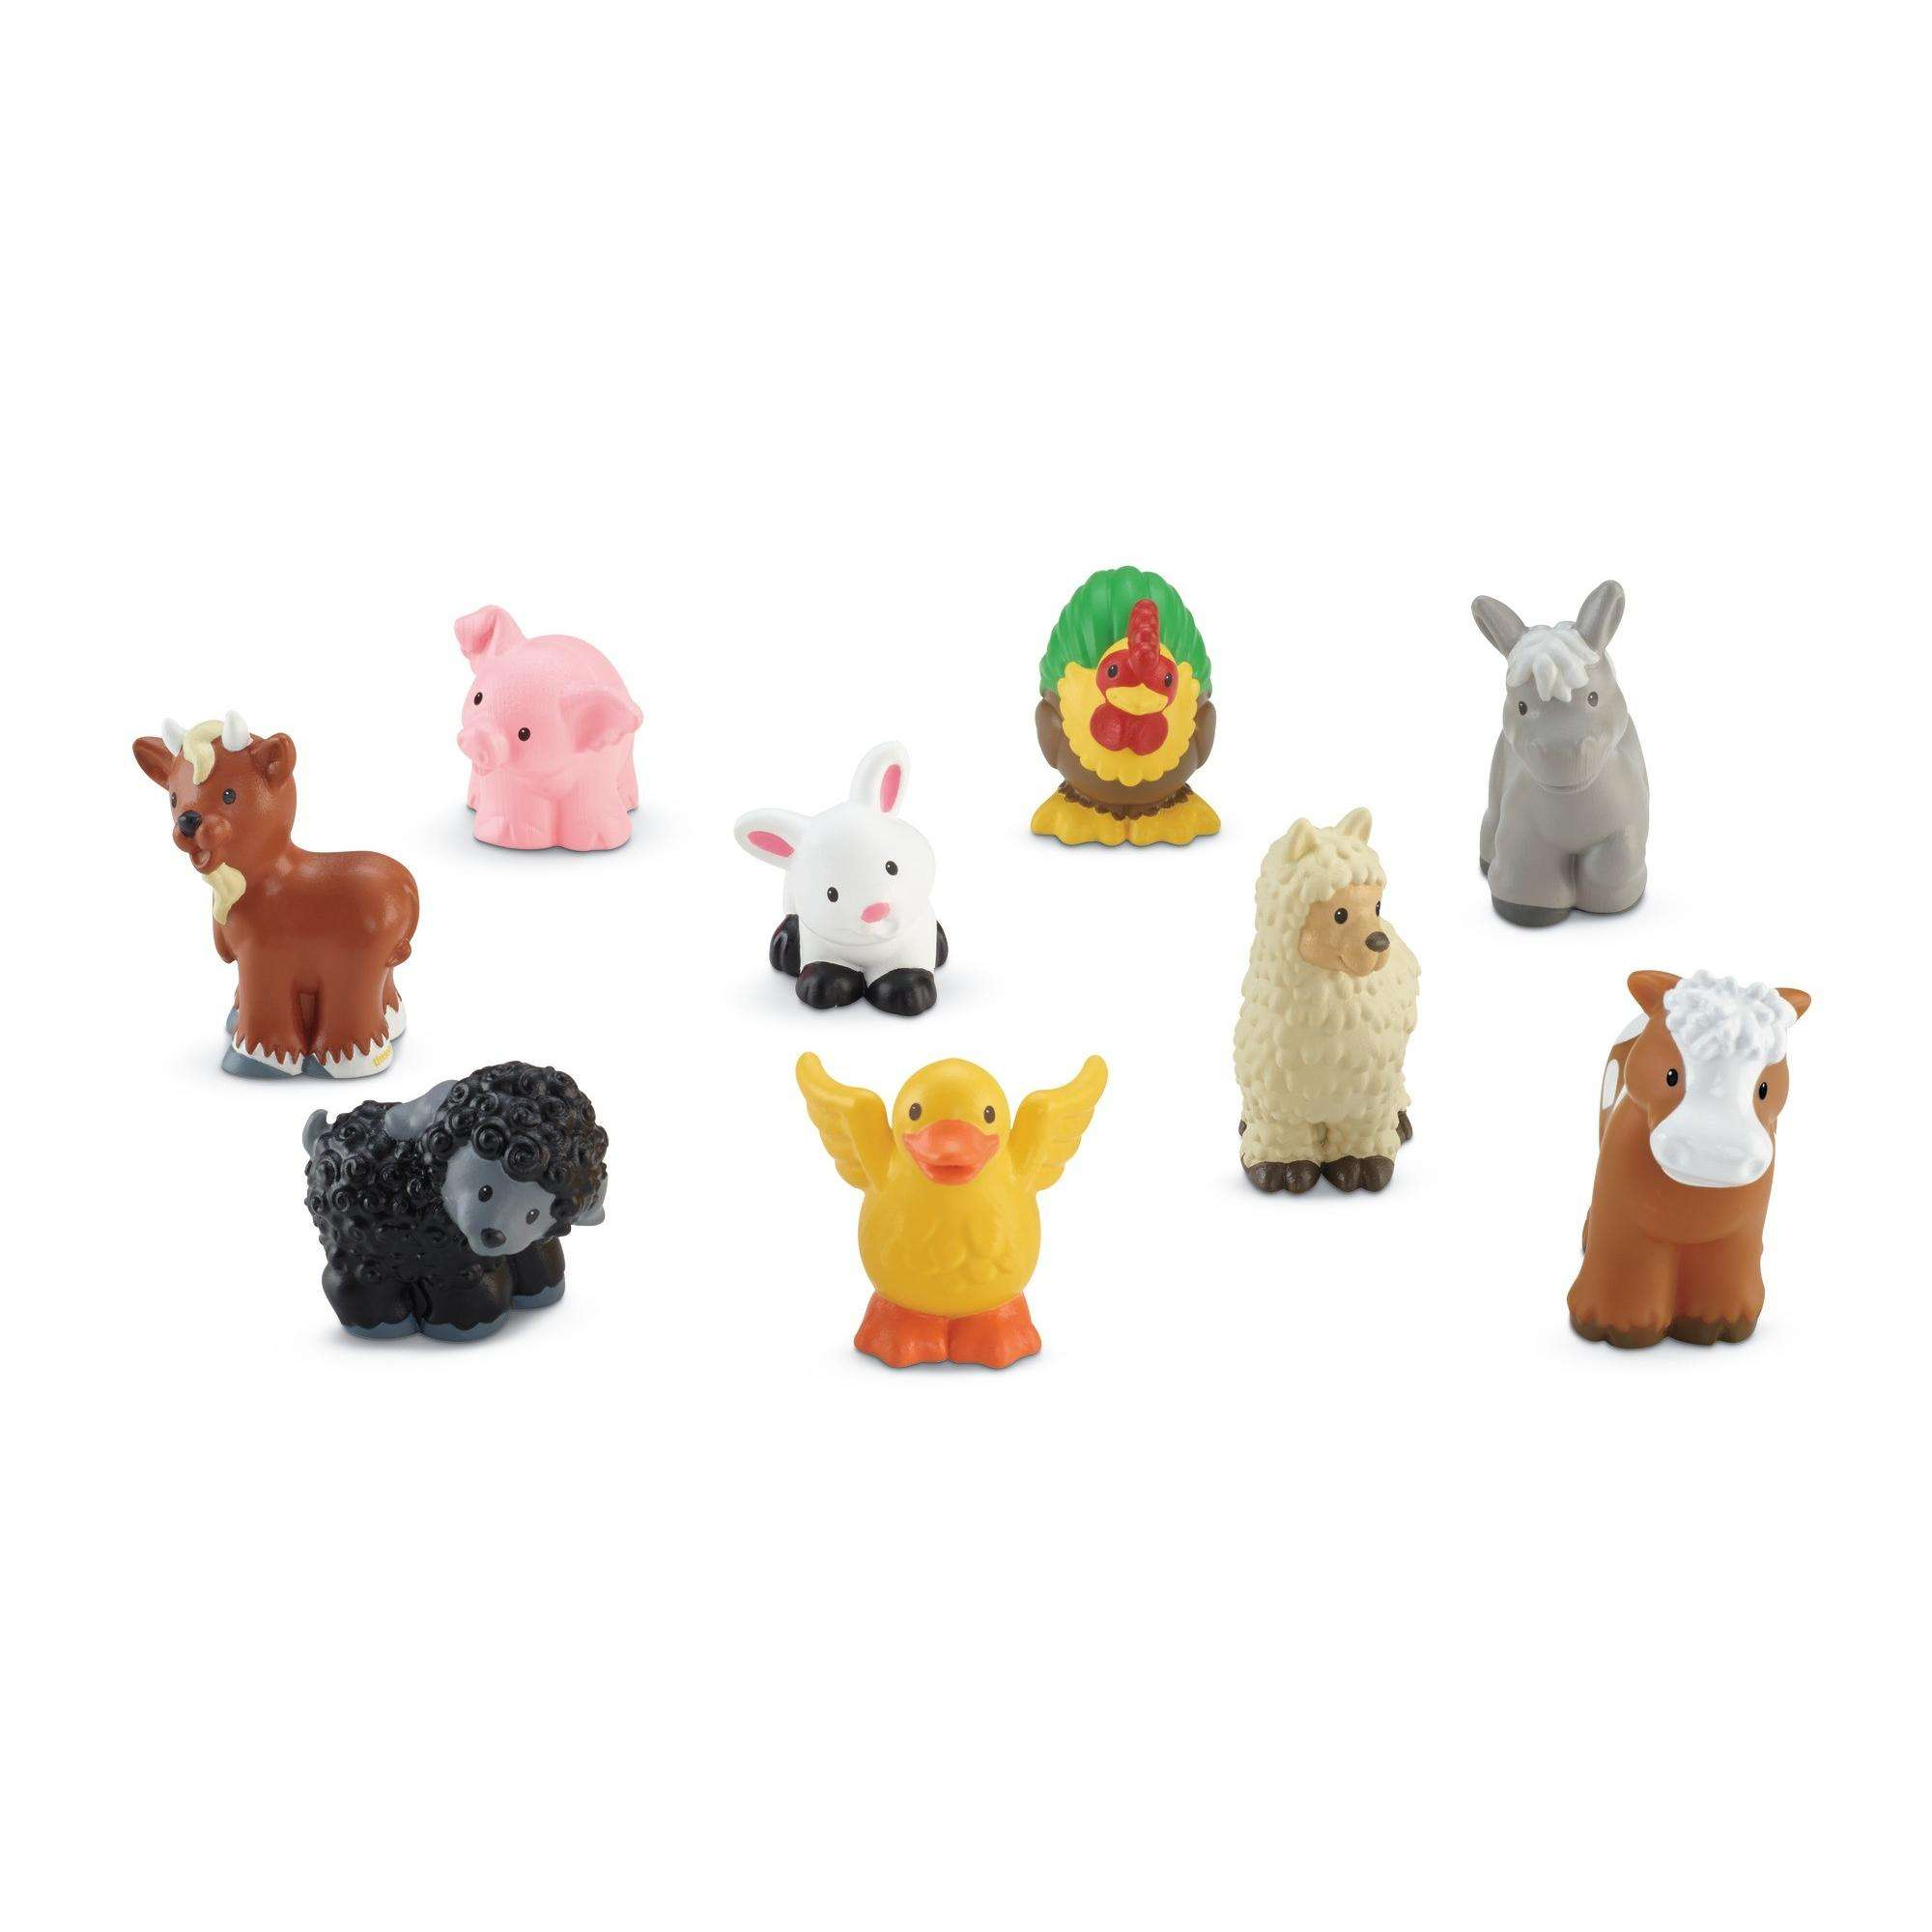 Little People Farm Animal Friends by Little People